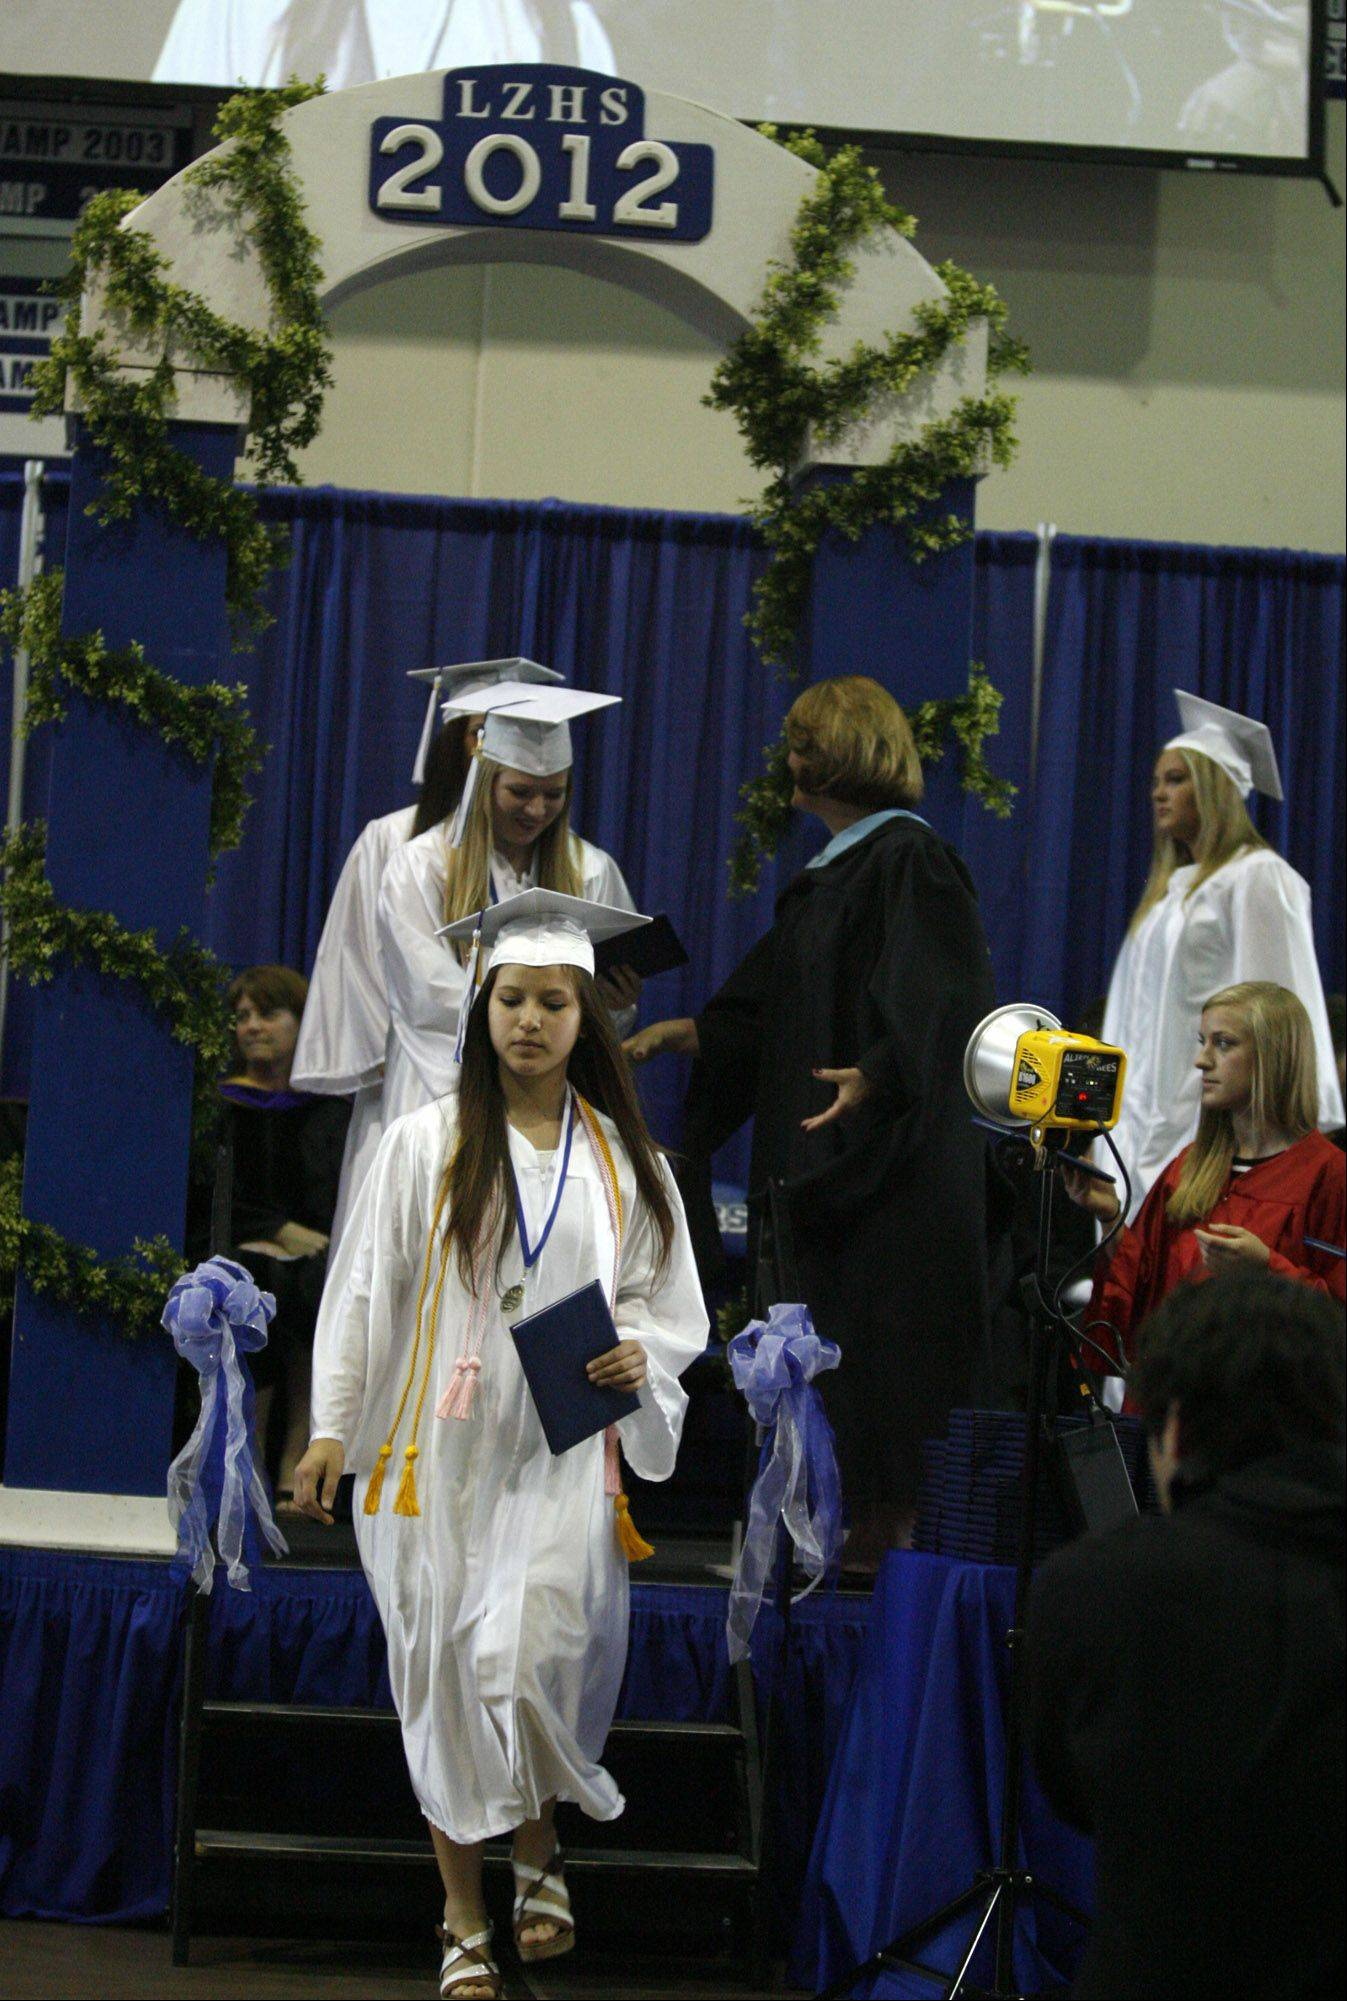 Images from the Lake Zurich High School graduation on Saturday, May 26, in Lake Zurich.